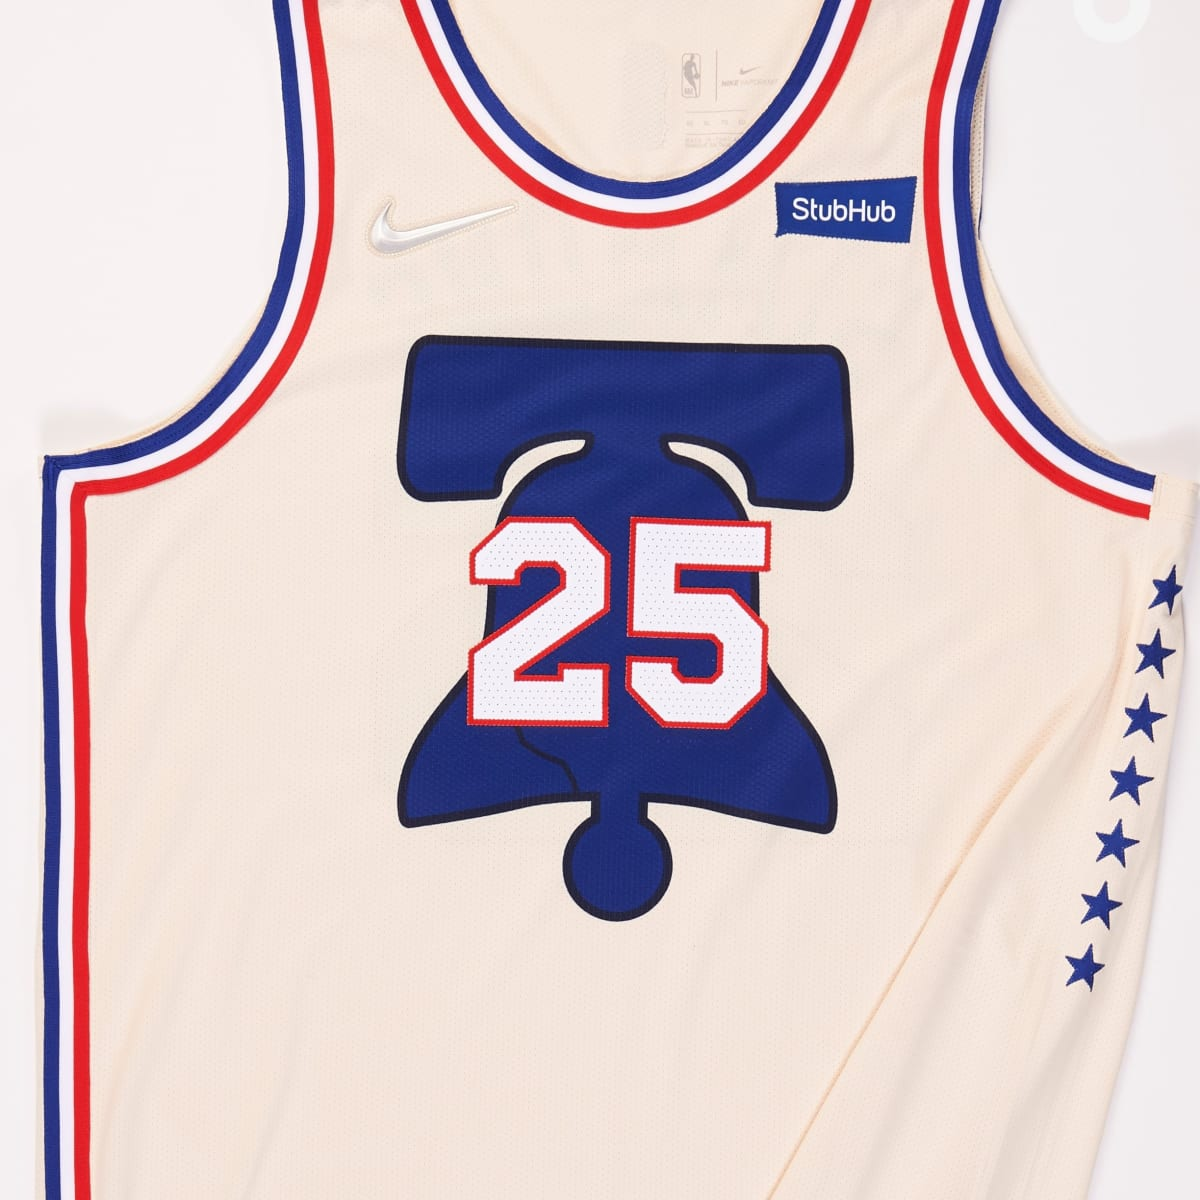 Sixers' Earned Jerseys Officially Revealed and Fans Are Unhappy ...